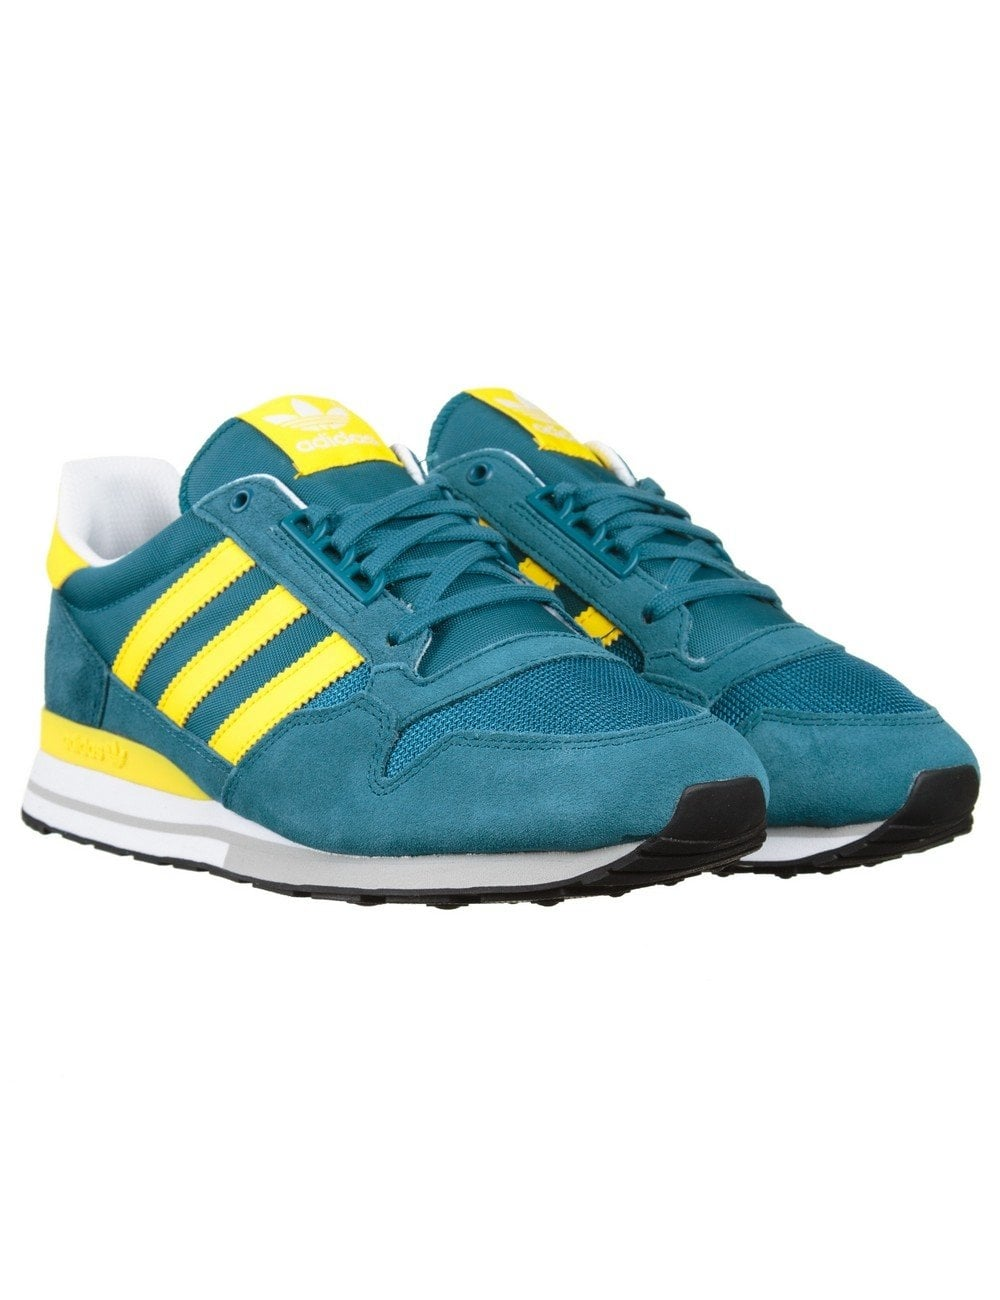 adidas originals zx 500 og shoes surf petrol yellow footwear from fat buddha store uk. Black Bedroom Furniture Sets. Home Design Ideas